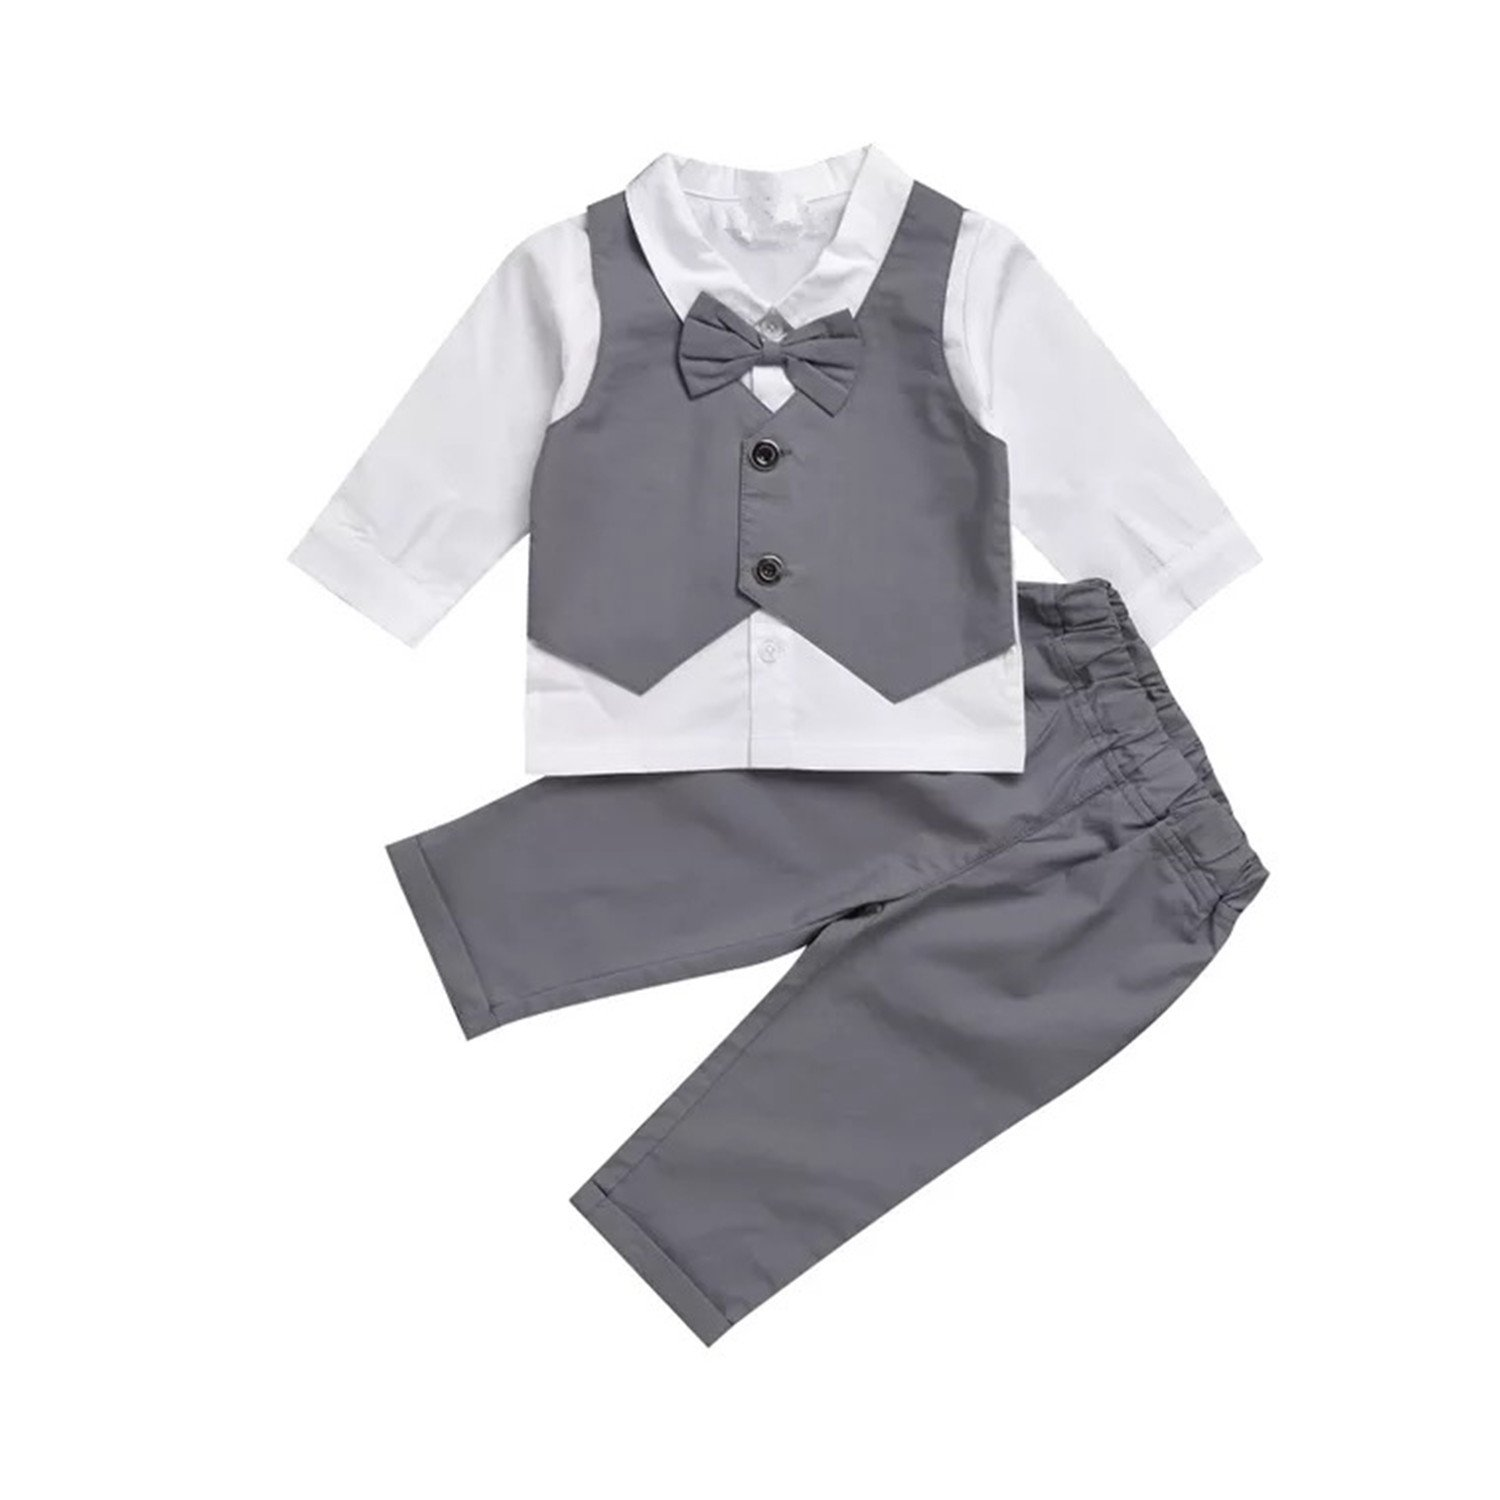 Infant and Toddler Baby Boy Gentleman Formal Party Wedding Suits Outfits (0-6Months, Grey)